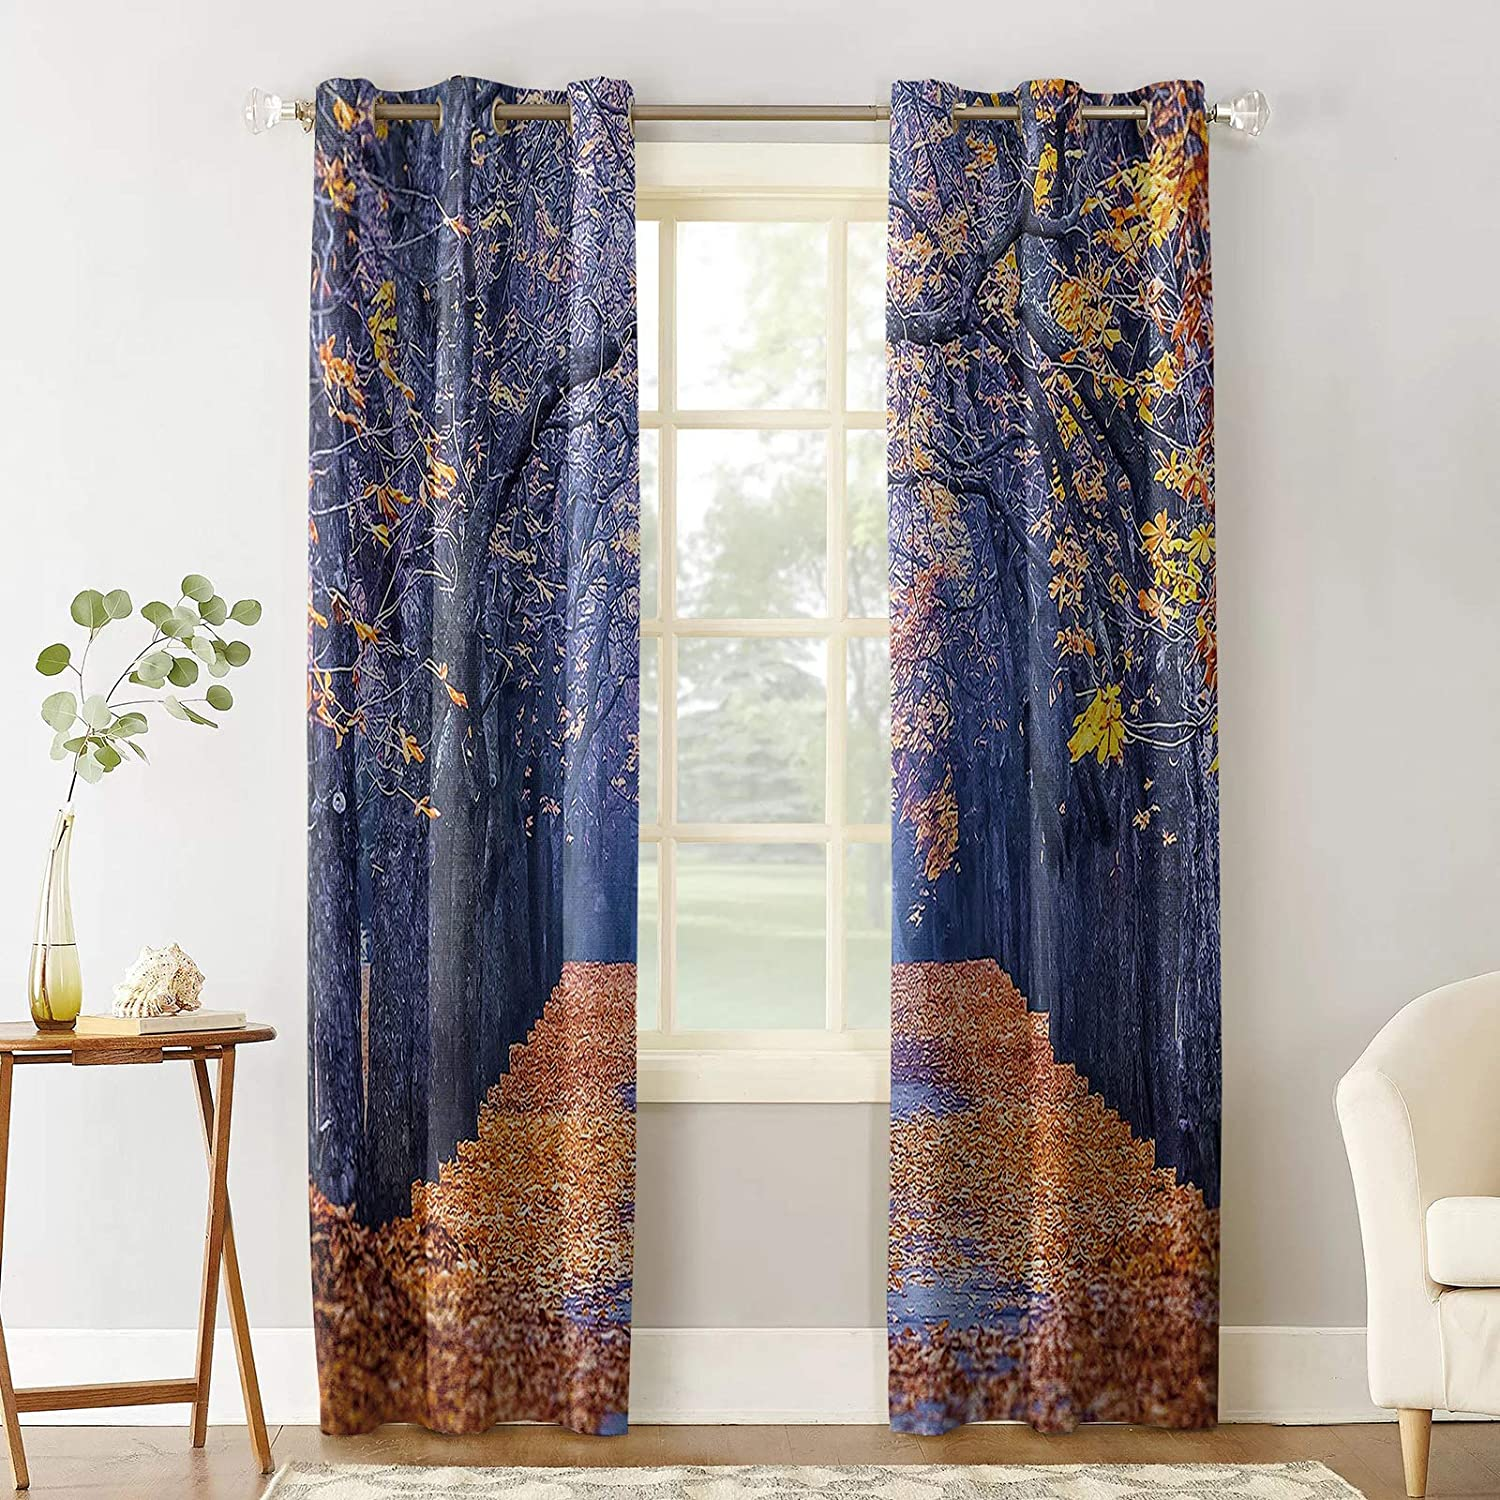 Blackout Curtains for Bedroom, Autumn Leaves Park Avenue Thermal Insulated Room Darkening Curtains, Window Curtain for Living Room, 96 Inches Length(Set of 2 Panel)